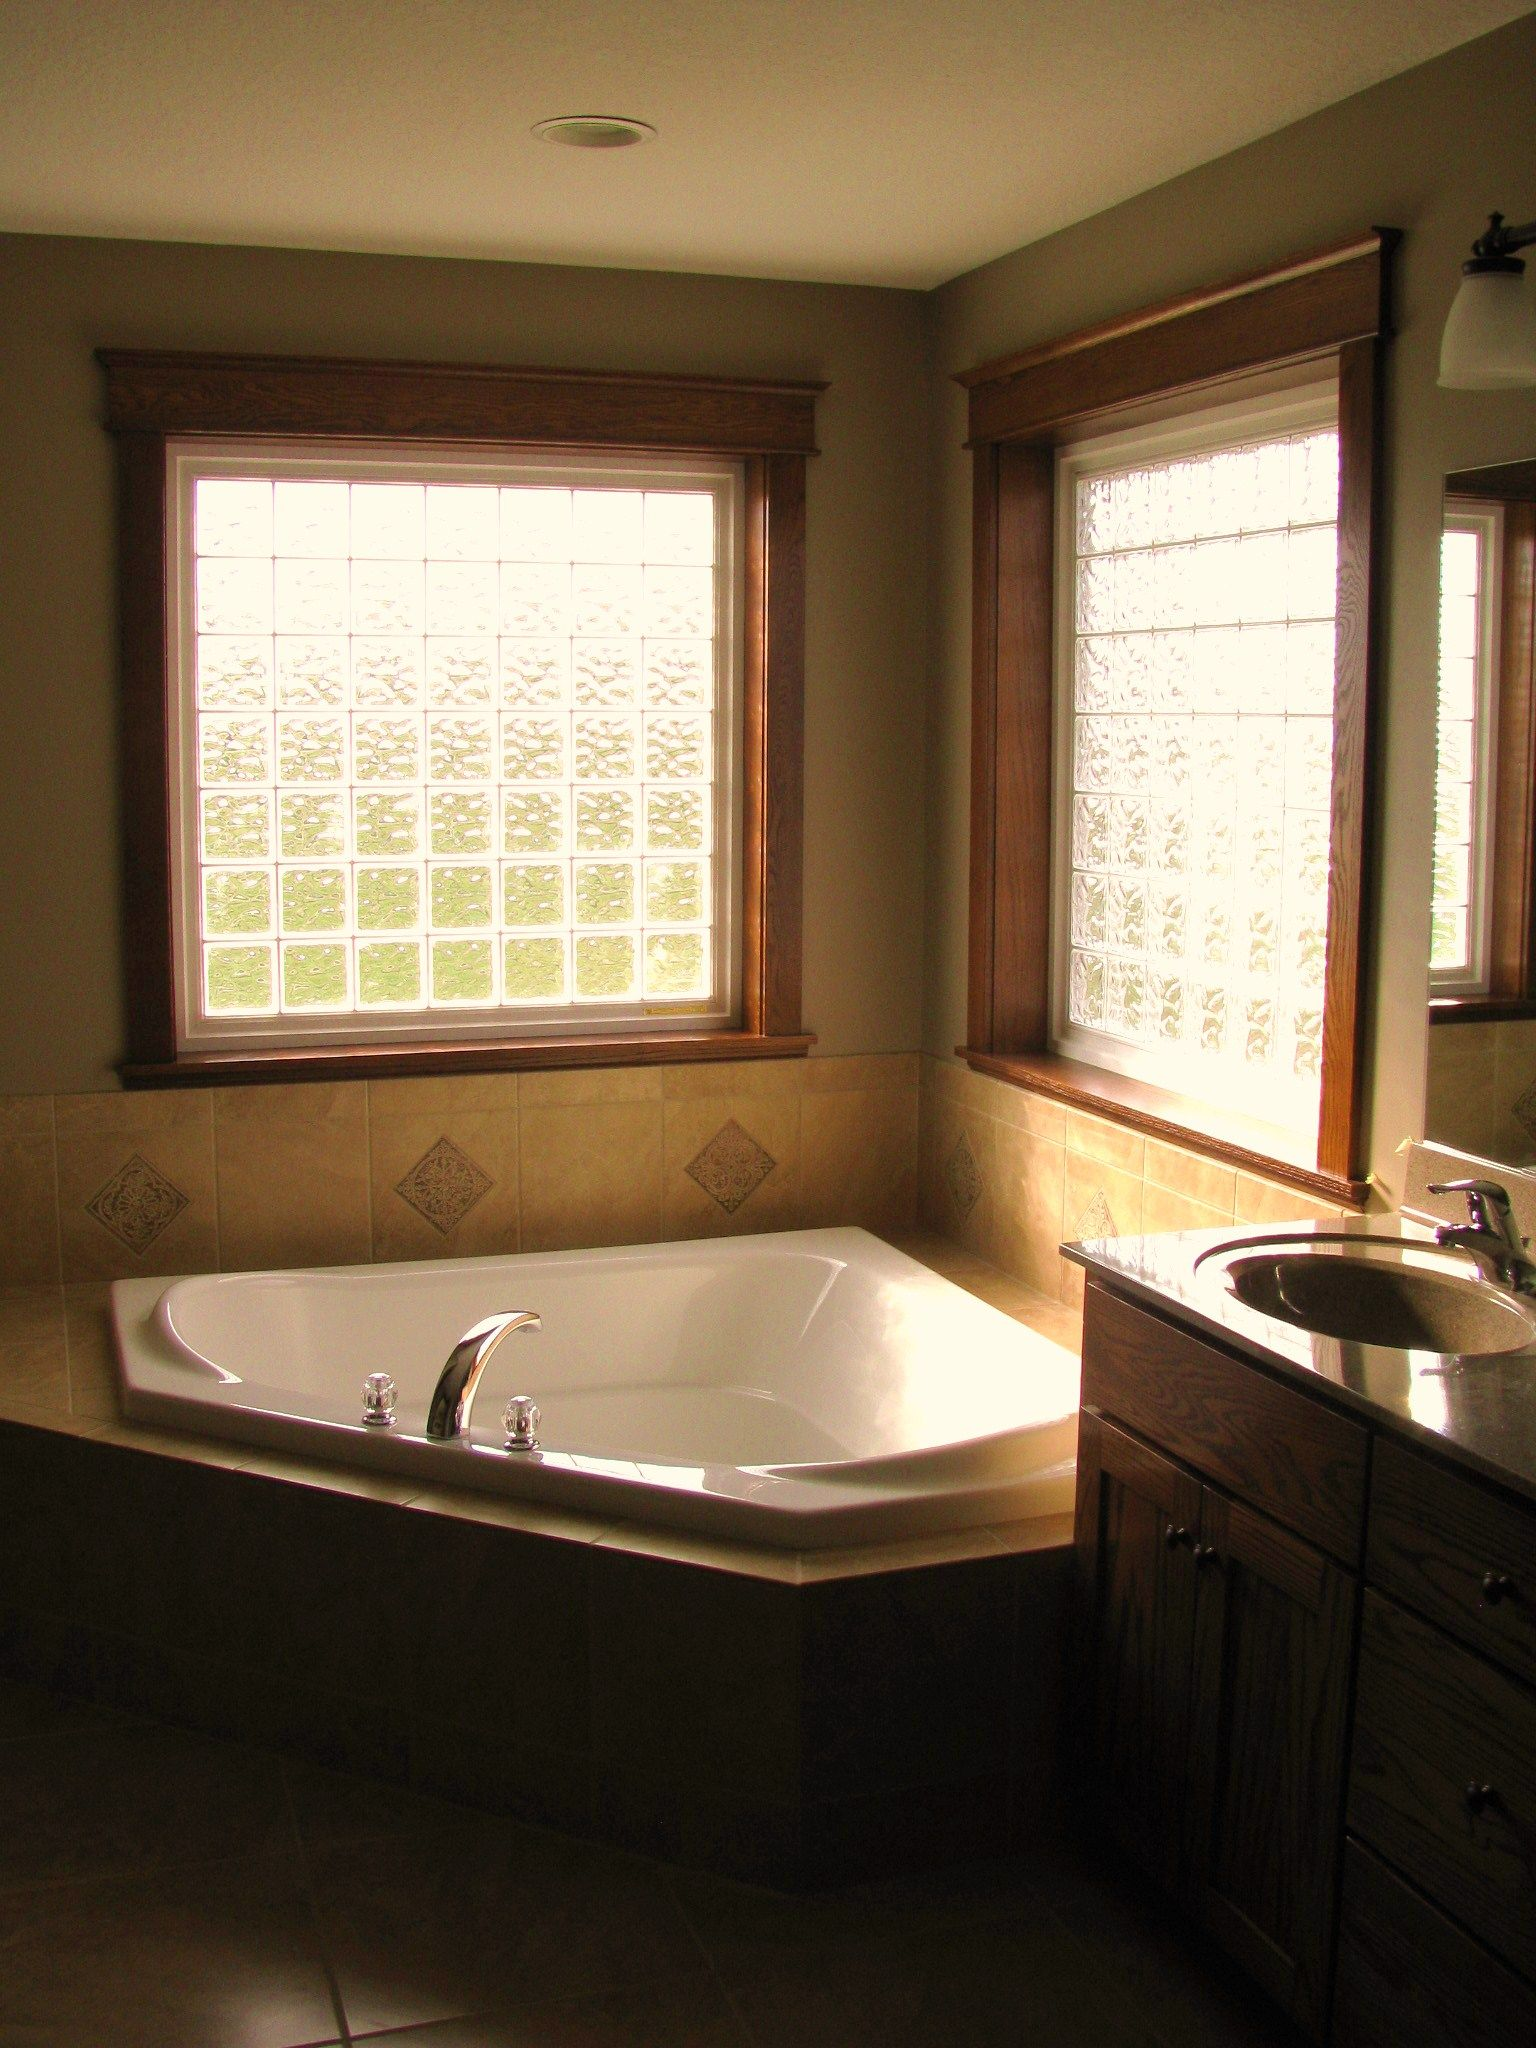 Corner Air Jetted Tub Glass Block Windows Bathrooms In